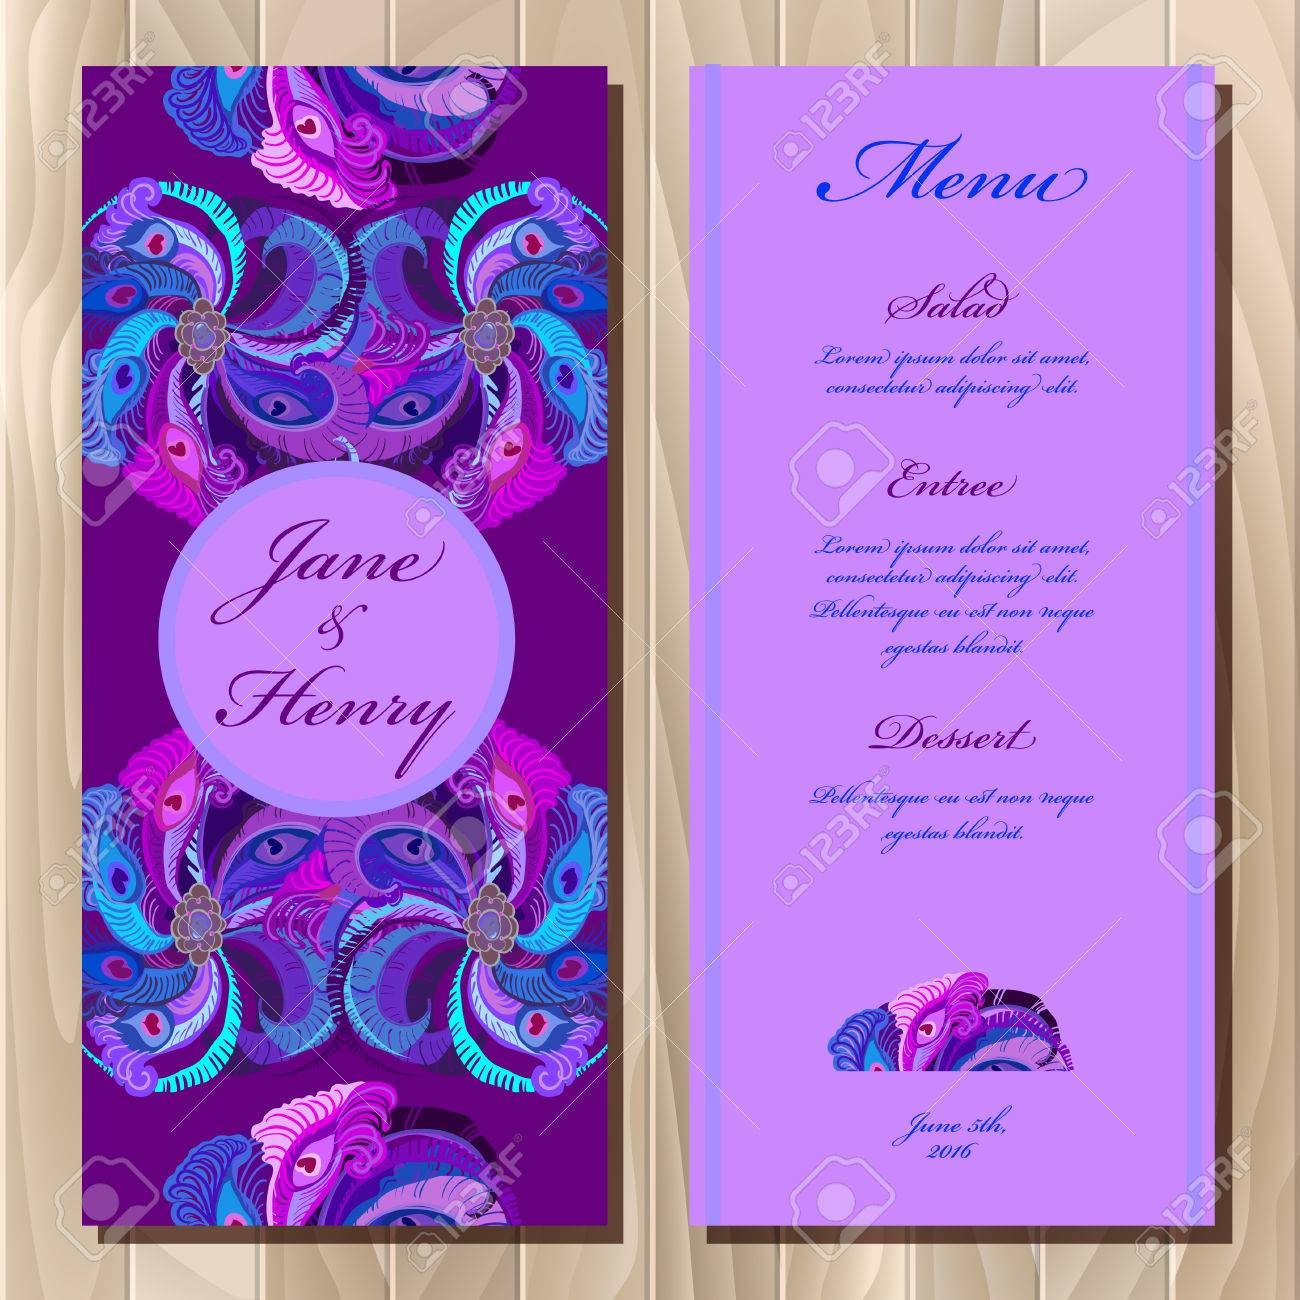 image about Printable Backgrounds named Marriage menu card with pea feathers, vector history. Printable..